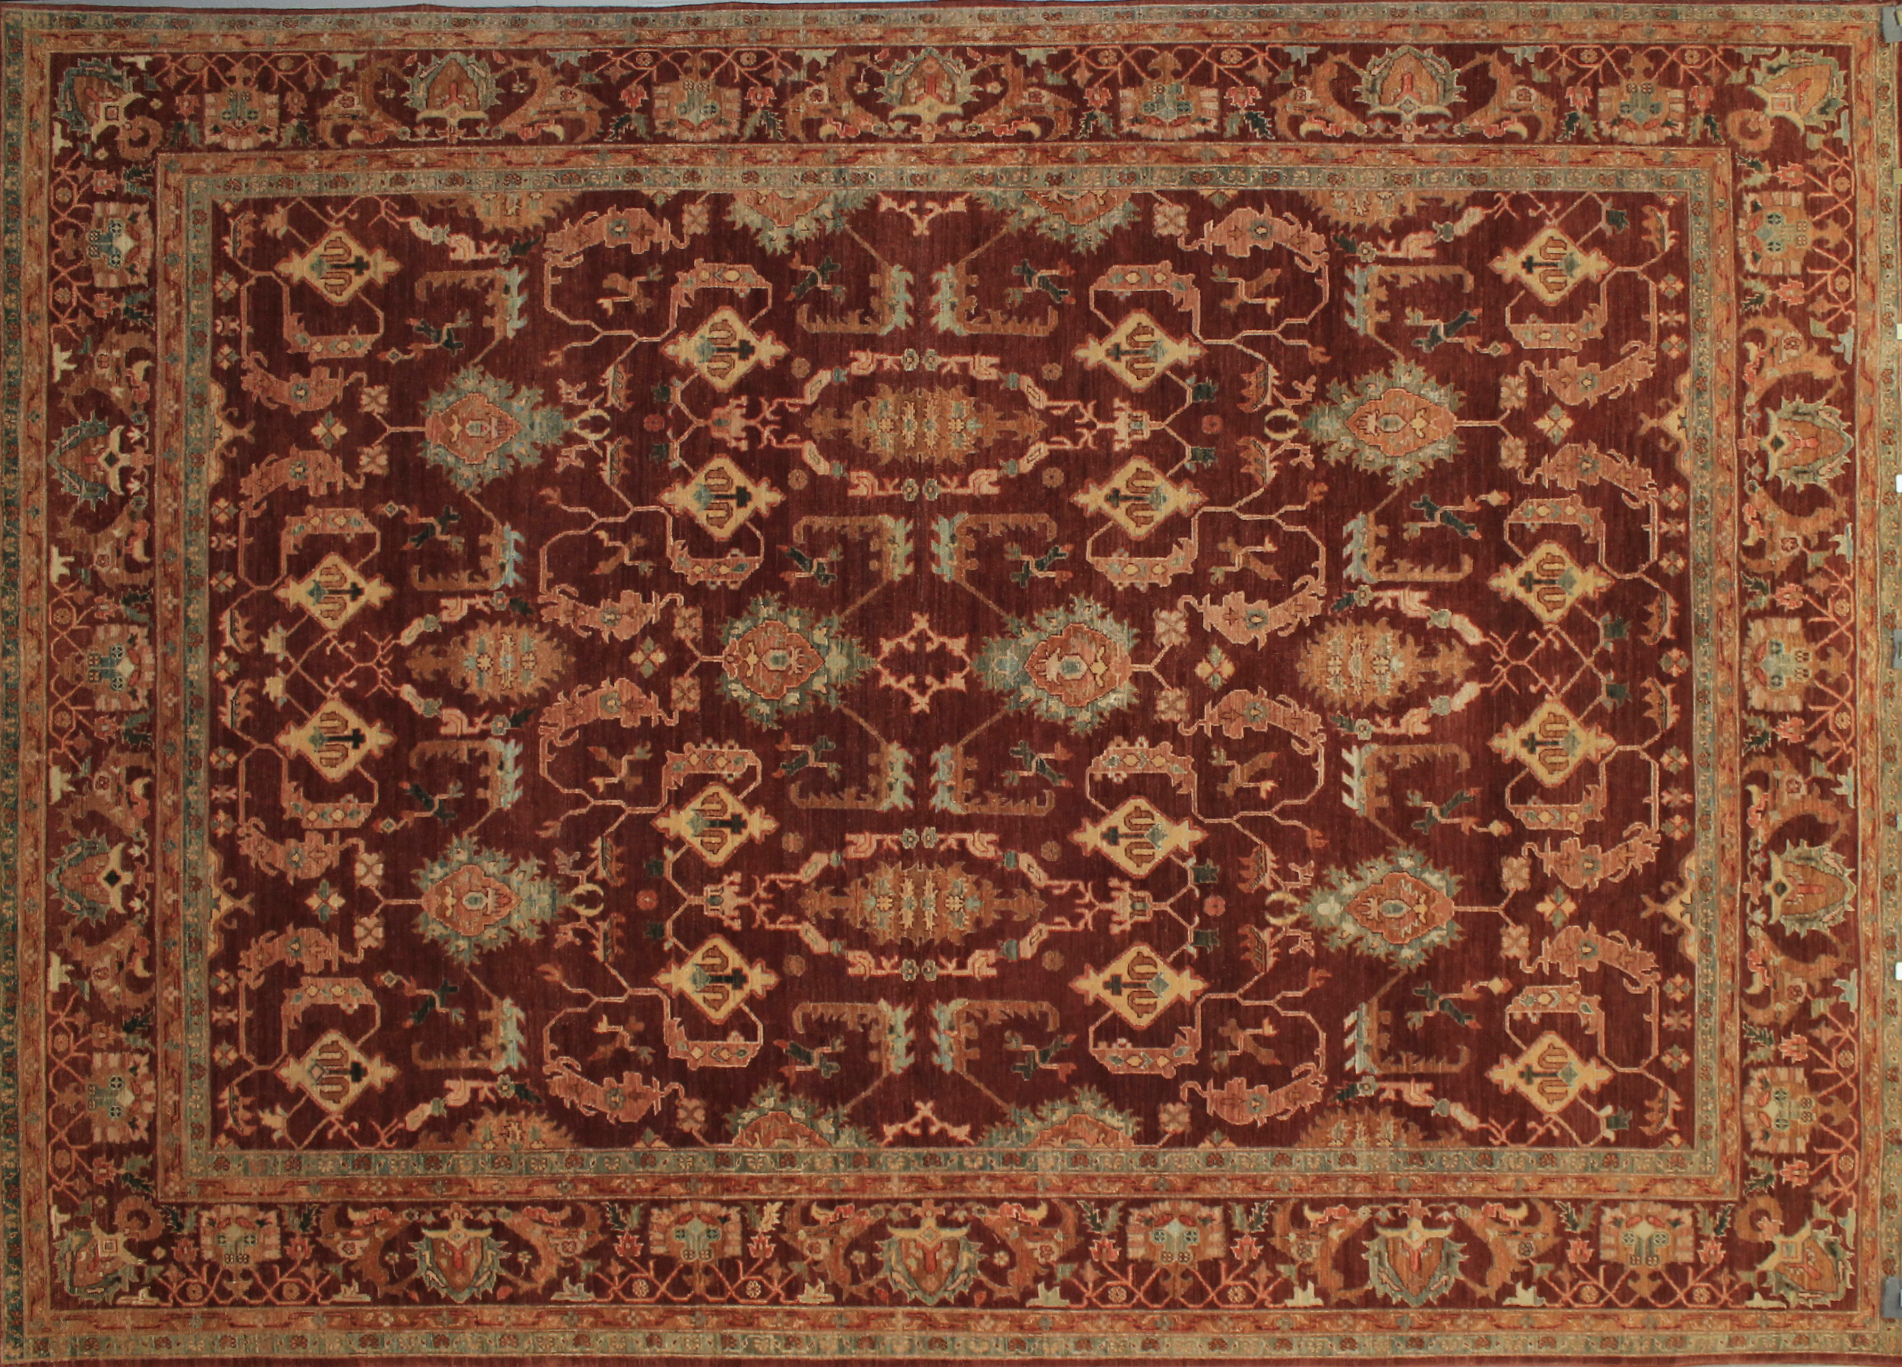 9x12 Peshawar Hand Knotted Wool Area Rug - MR11824